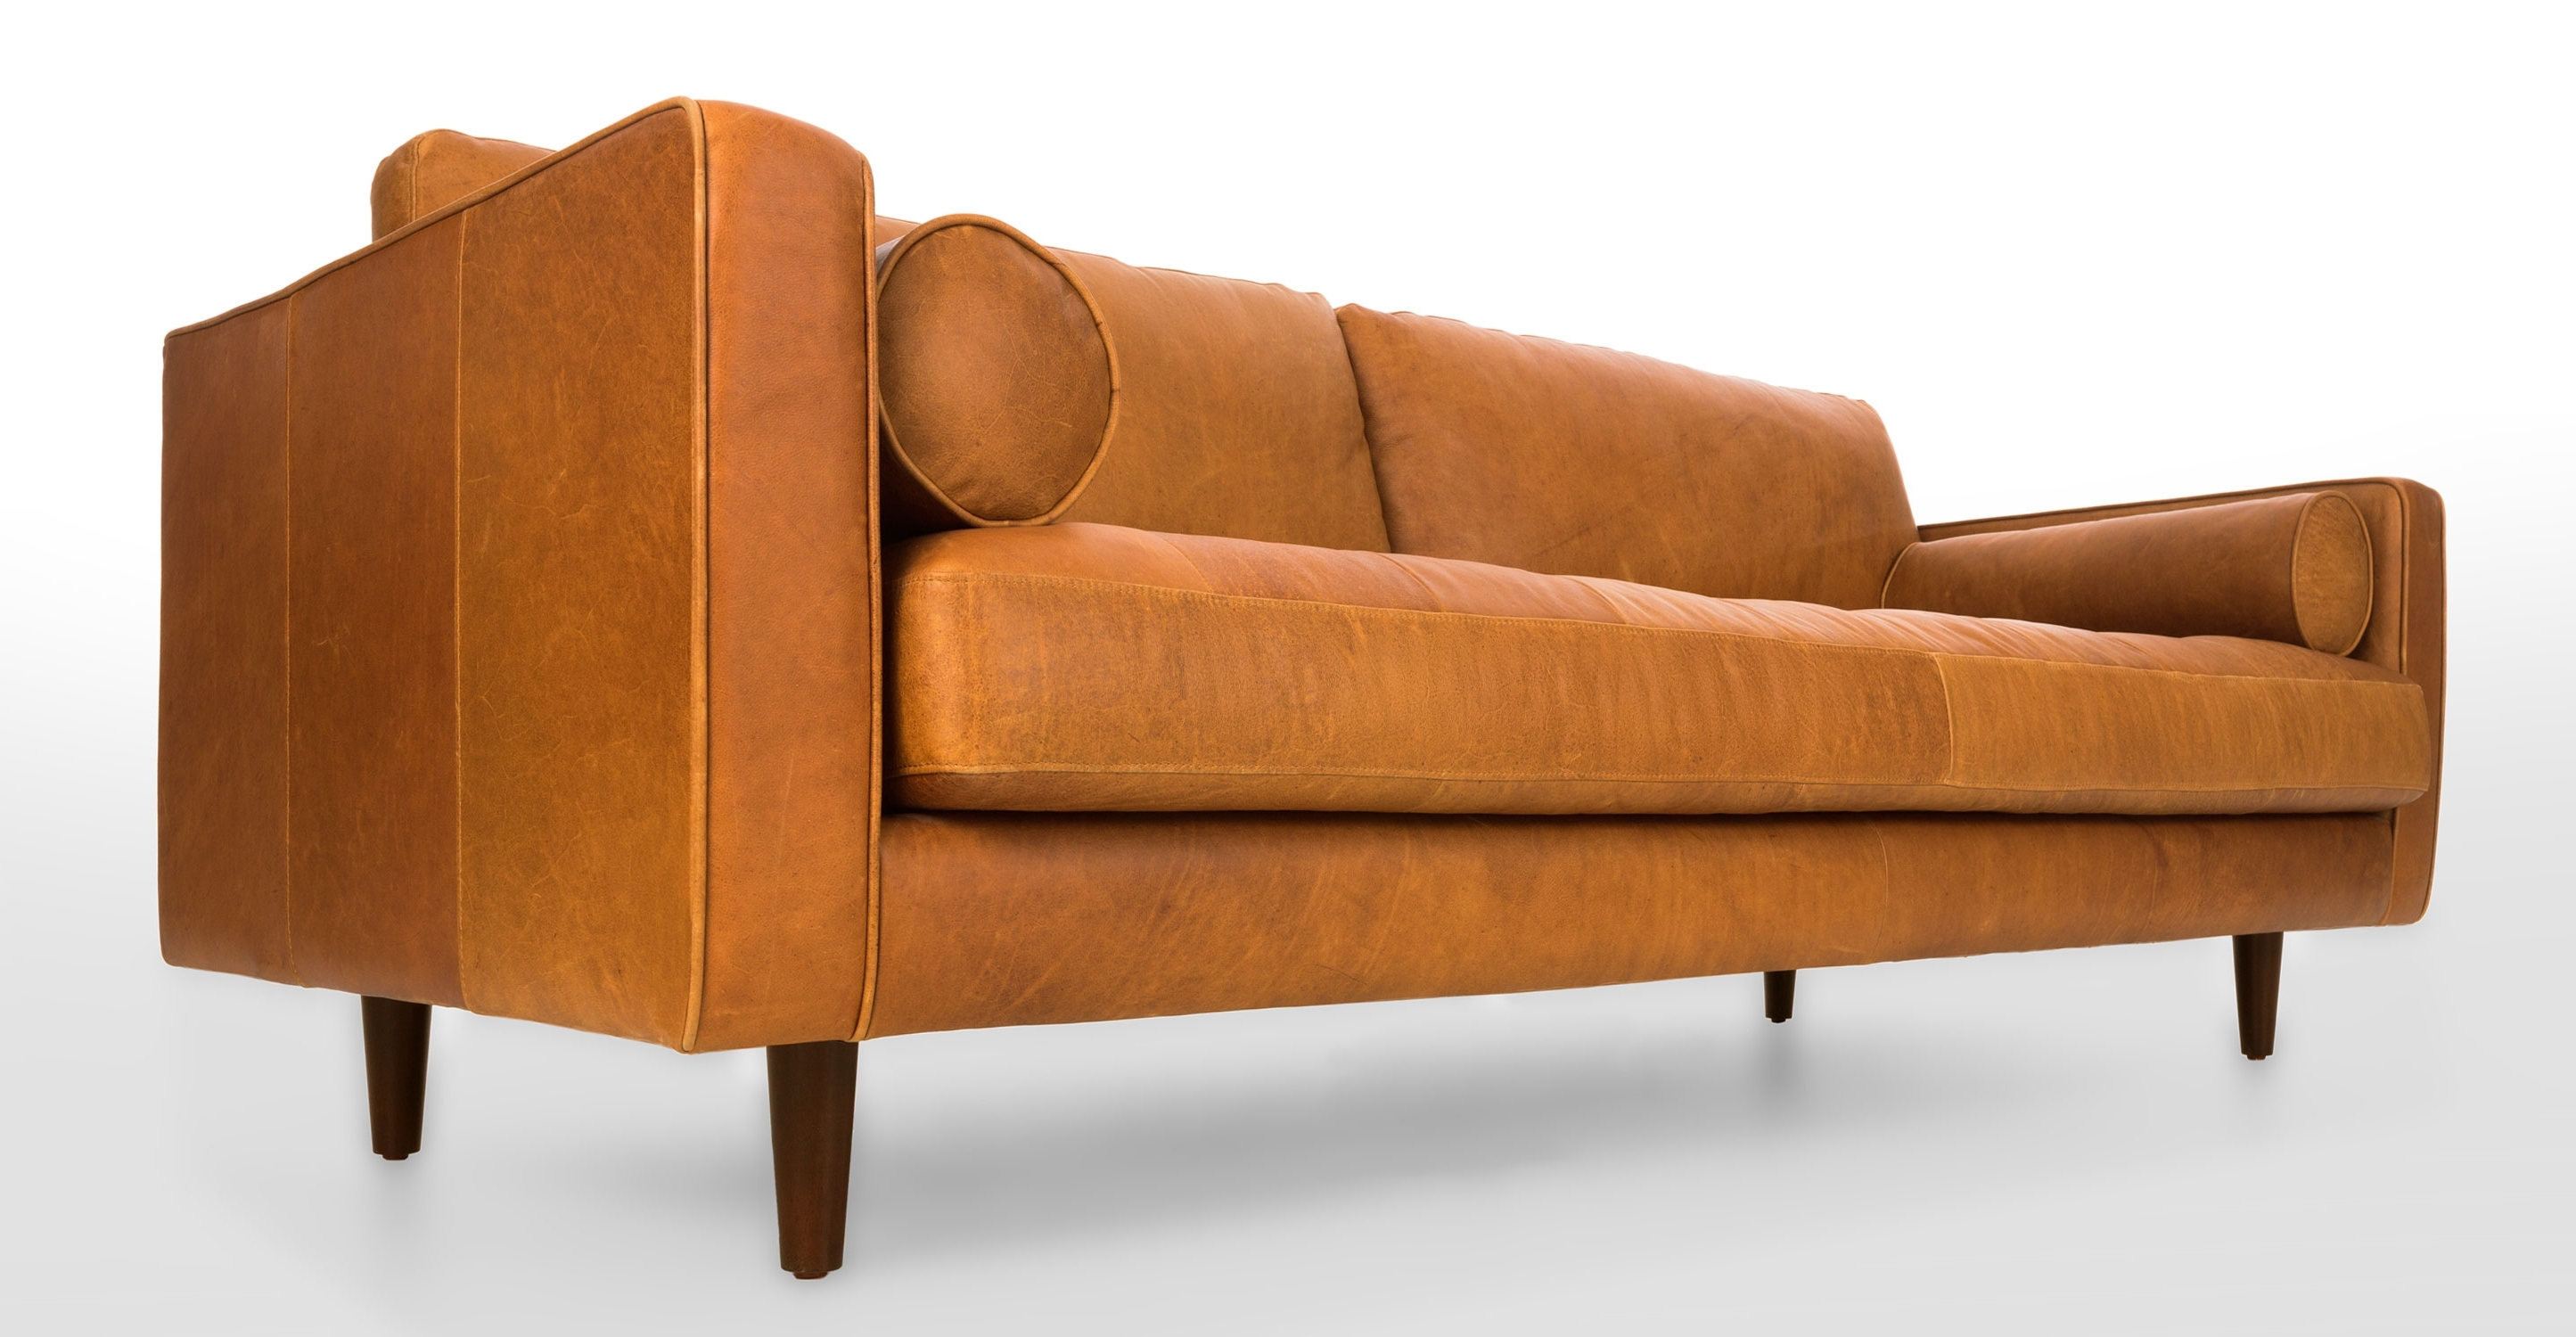 Popular Light Tan Leather Sofas In Tan Leather Sofa (View 14 of 15)